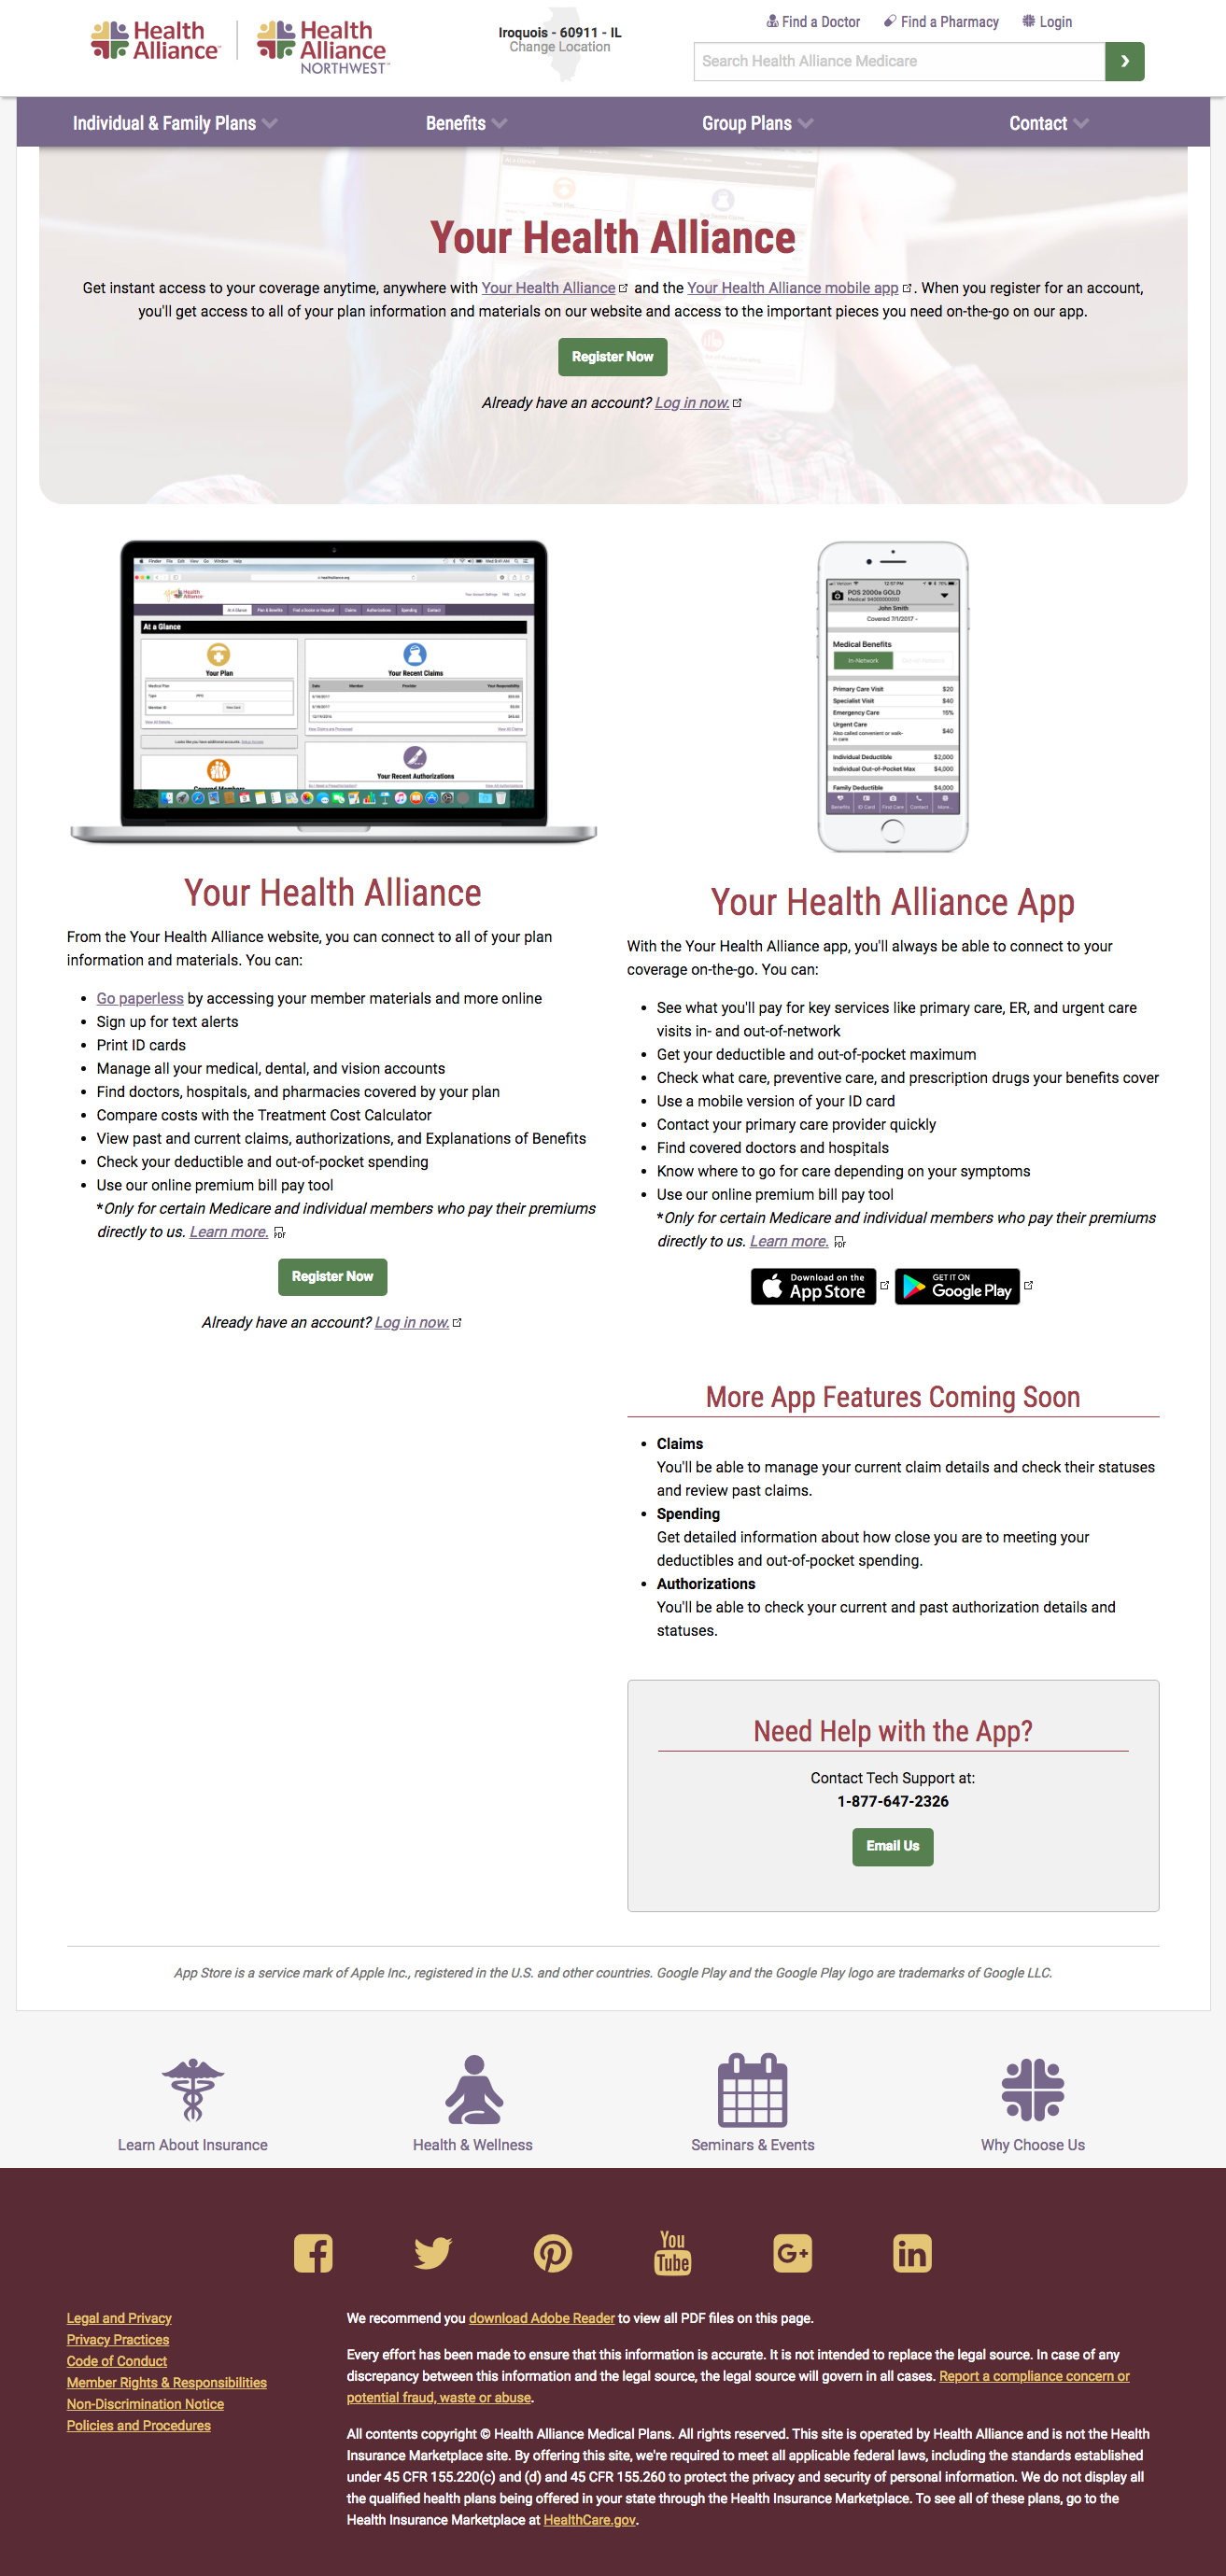 Health Alliance app landing page